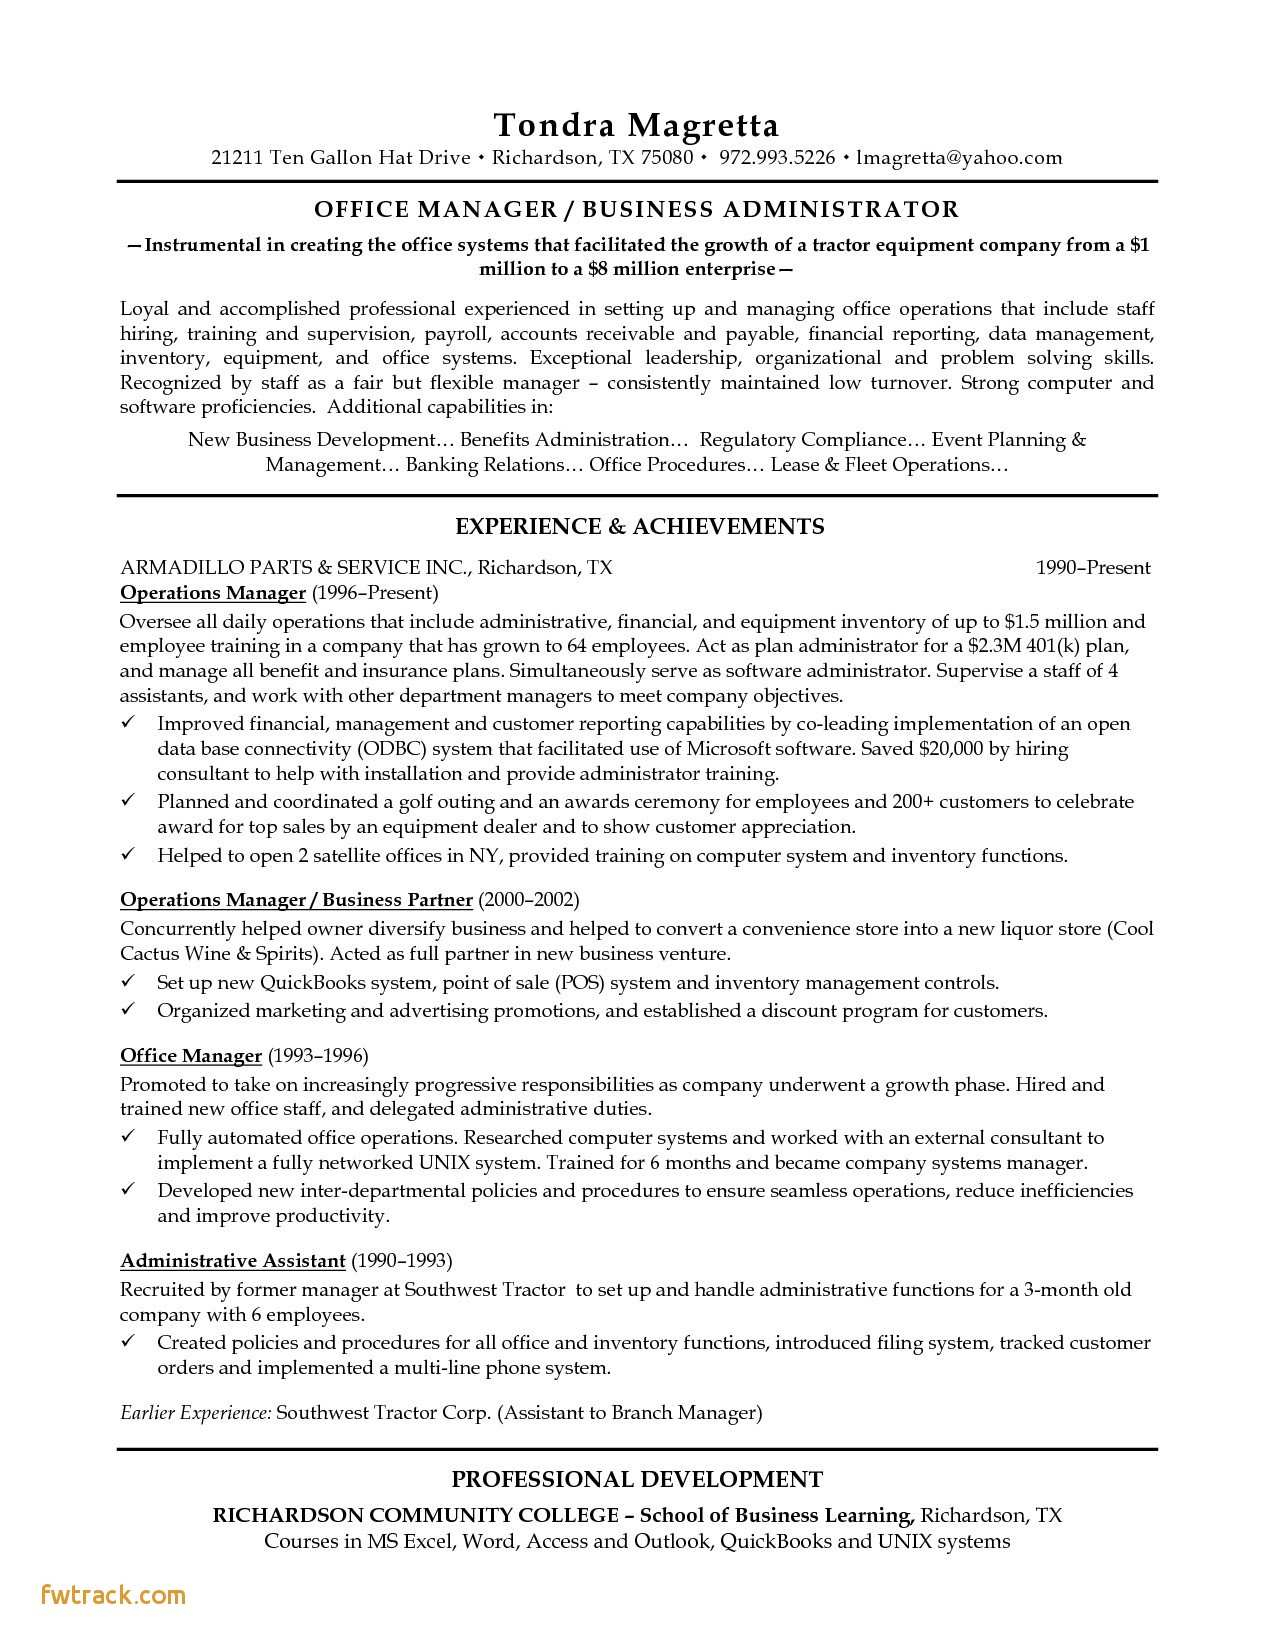 Retail Resume Template - Resume Examples for Retail Fwtrack Fwtrack